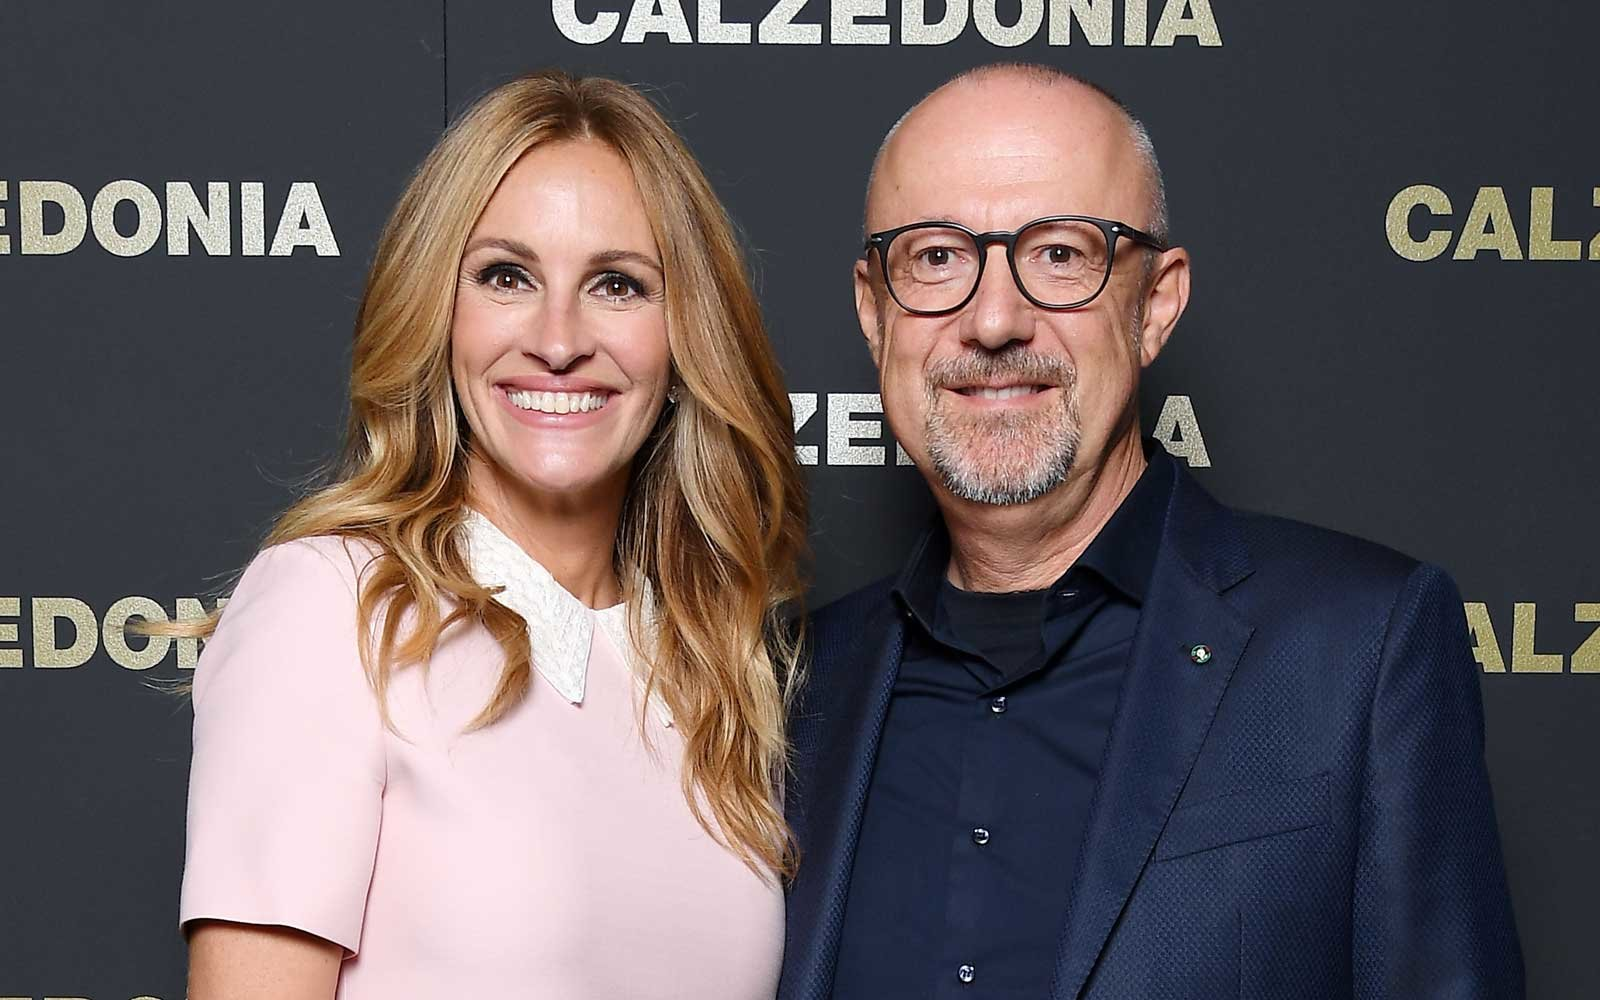 Actress Julia Roberts and Sandro Veronesi attends Calzedonia Legs Show on September 5, 2017 in Verona, Italy.